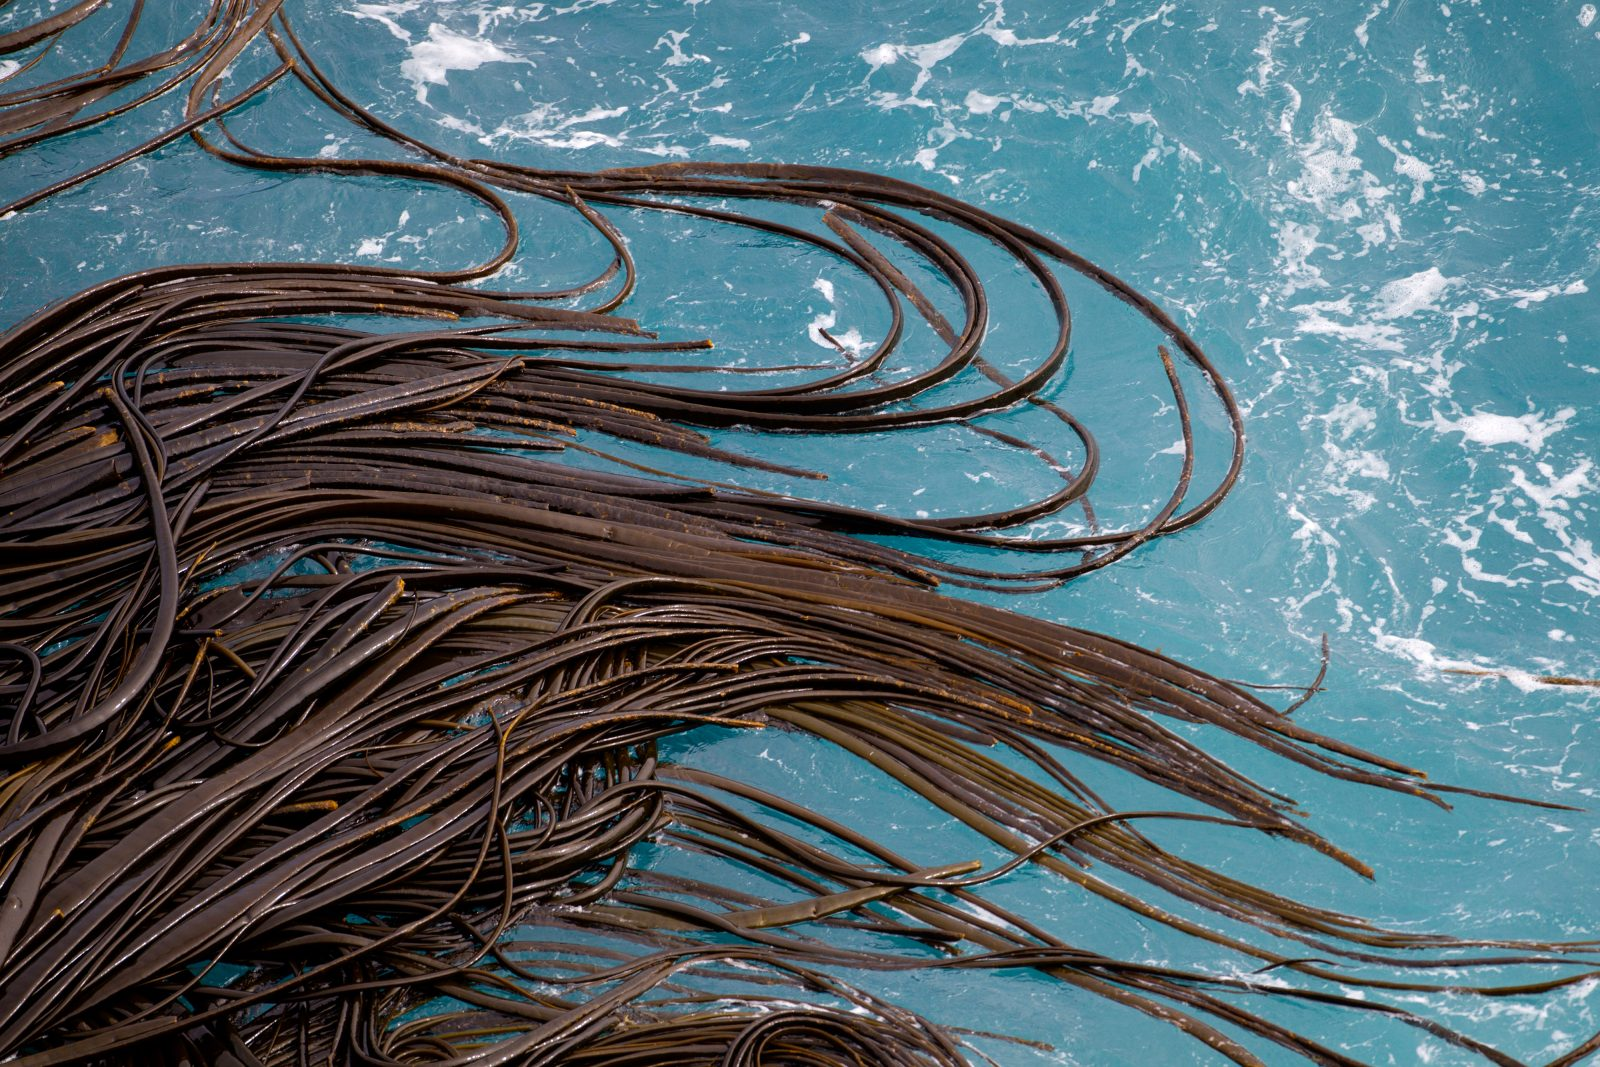 The long tendrils of Antarctic bull kelp twist and ripple according to the swell of the tumultuous Southern Ocean. Despite the relentless pounding, this kelp, the largest of all the brown algae, is one of the most common species in the intertidal zone of most southern continental coastlines and the subantarctic islands. One of the secrets of its success are the kelp equivalent of roots, holdfasts. These structures, which may measure up to a metre across, anchor the kelp so strongly that it is not uncommon for a piece of the rock to break off before the kelp is torn free. Another reason for the widespread distribution of the species is its ability to stay alive at sea in masses of tangled fronds known as rafts. Free-floating kelp can remain alive and still reproduce for several months, and it is estimated that there are tens of millions of these rafts in the Southern Ocean at any one time. They not only assist in the dispersal of the kelp itself, but can also support mini-ecosystems of travelling marine invertebrates and other micro-organisms that otherwise would have no chance of crossing vast swathes of ocean. Like forests on land, kelp forests are also important in maintaining biodiversity in the ocean, particularly near the coast. The dense stalks and fronds provide not only a haven from inclement weather but also shelter from the sun and protection from predators.